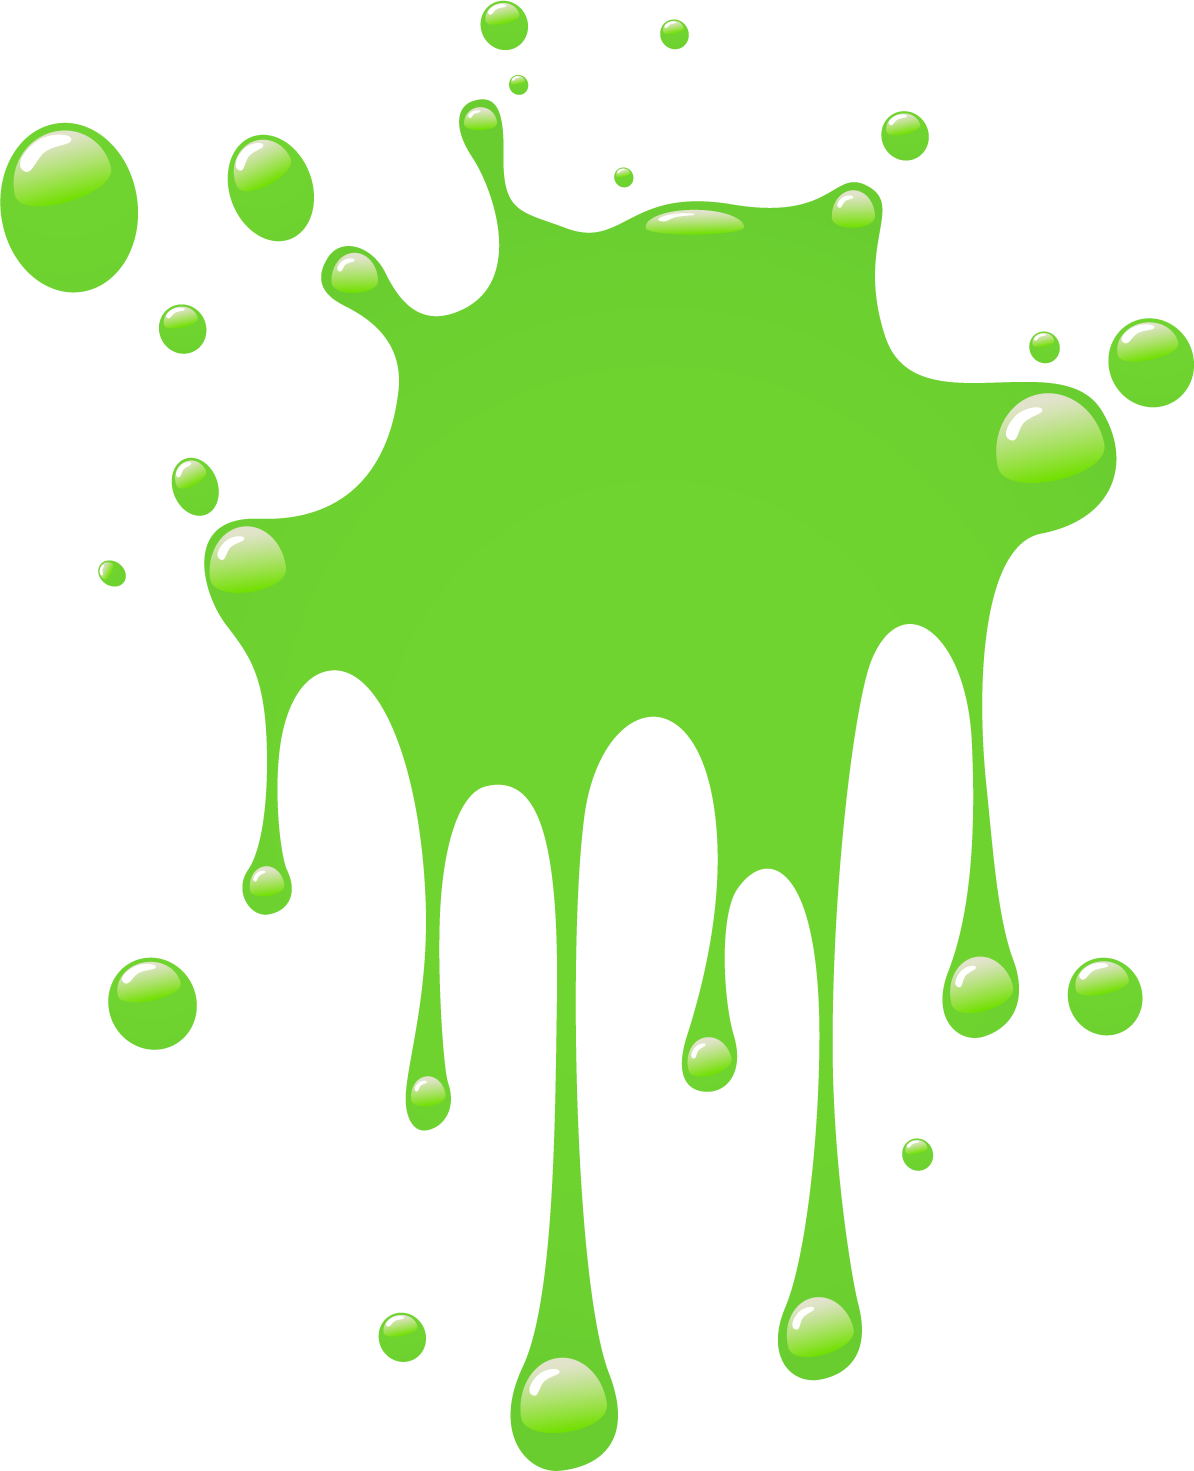 Slime transparent background